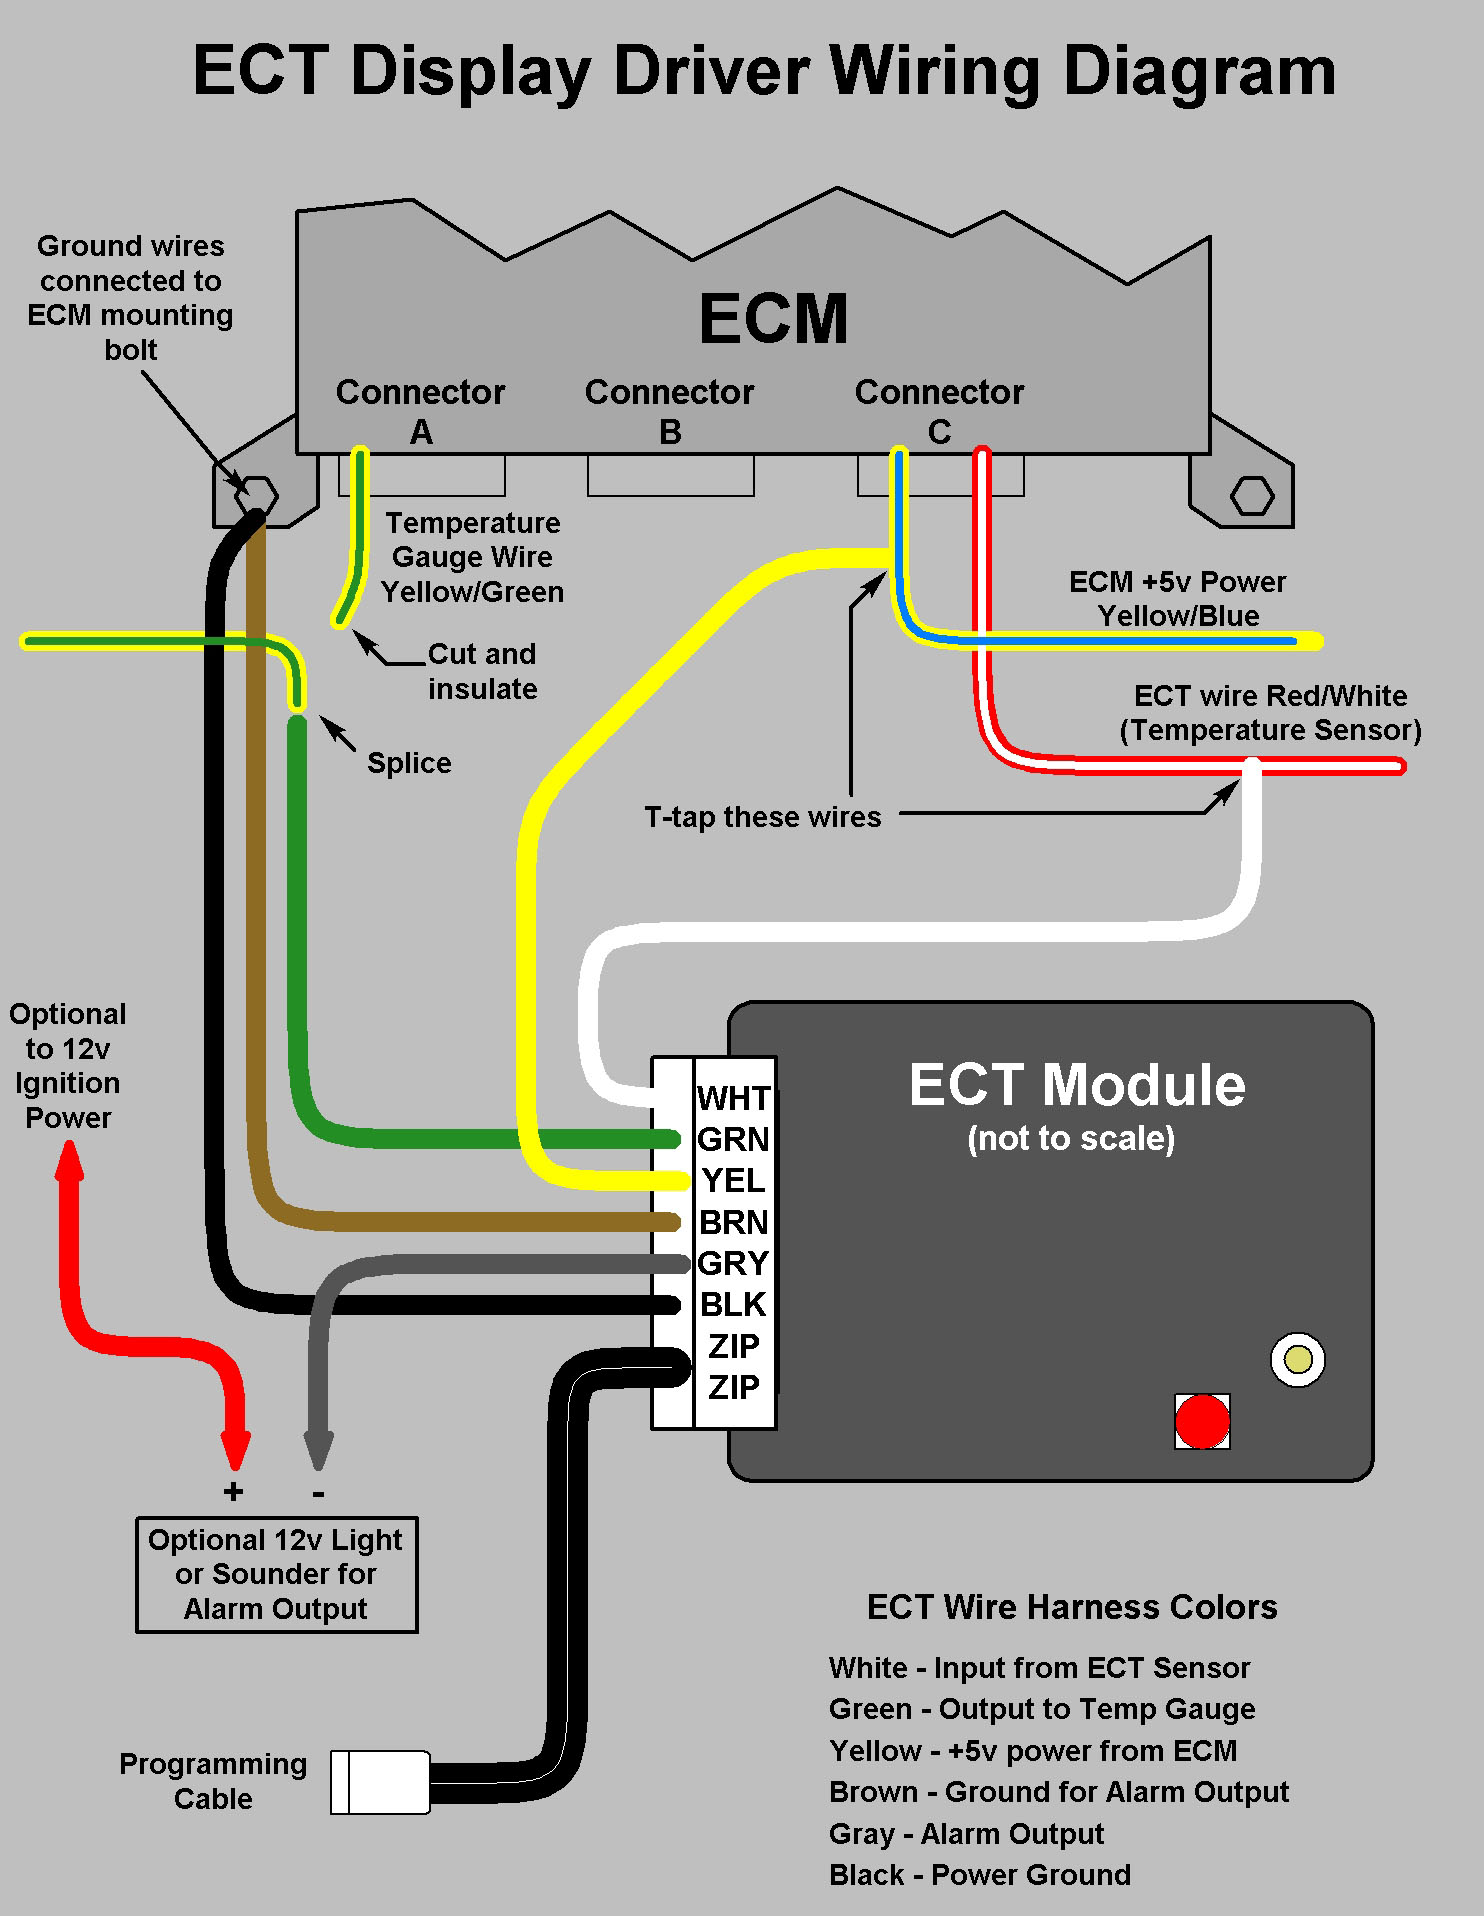 ECT wiring diagram aem ems 4 wiring diagram aem ems fox body mustangs \u2022 free wiring ems stinger wiring diagram at metegol.co